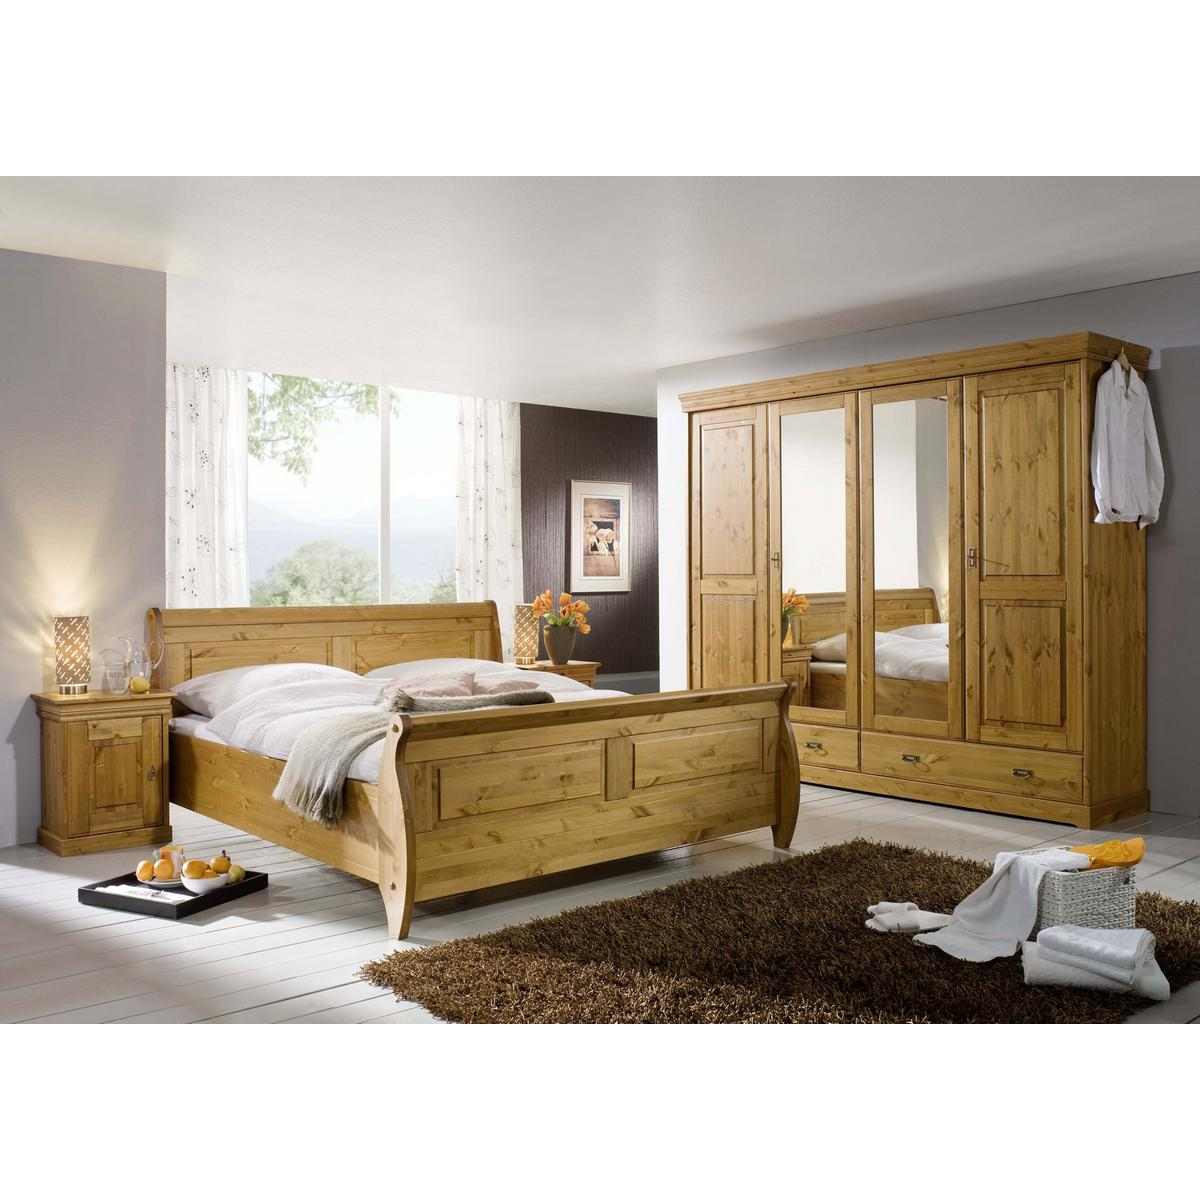 schlafzimmer roland ii kiefer massiv honigfarben lackiert. Black Bedroom Furniture Sets. Home Design Ideas